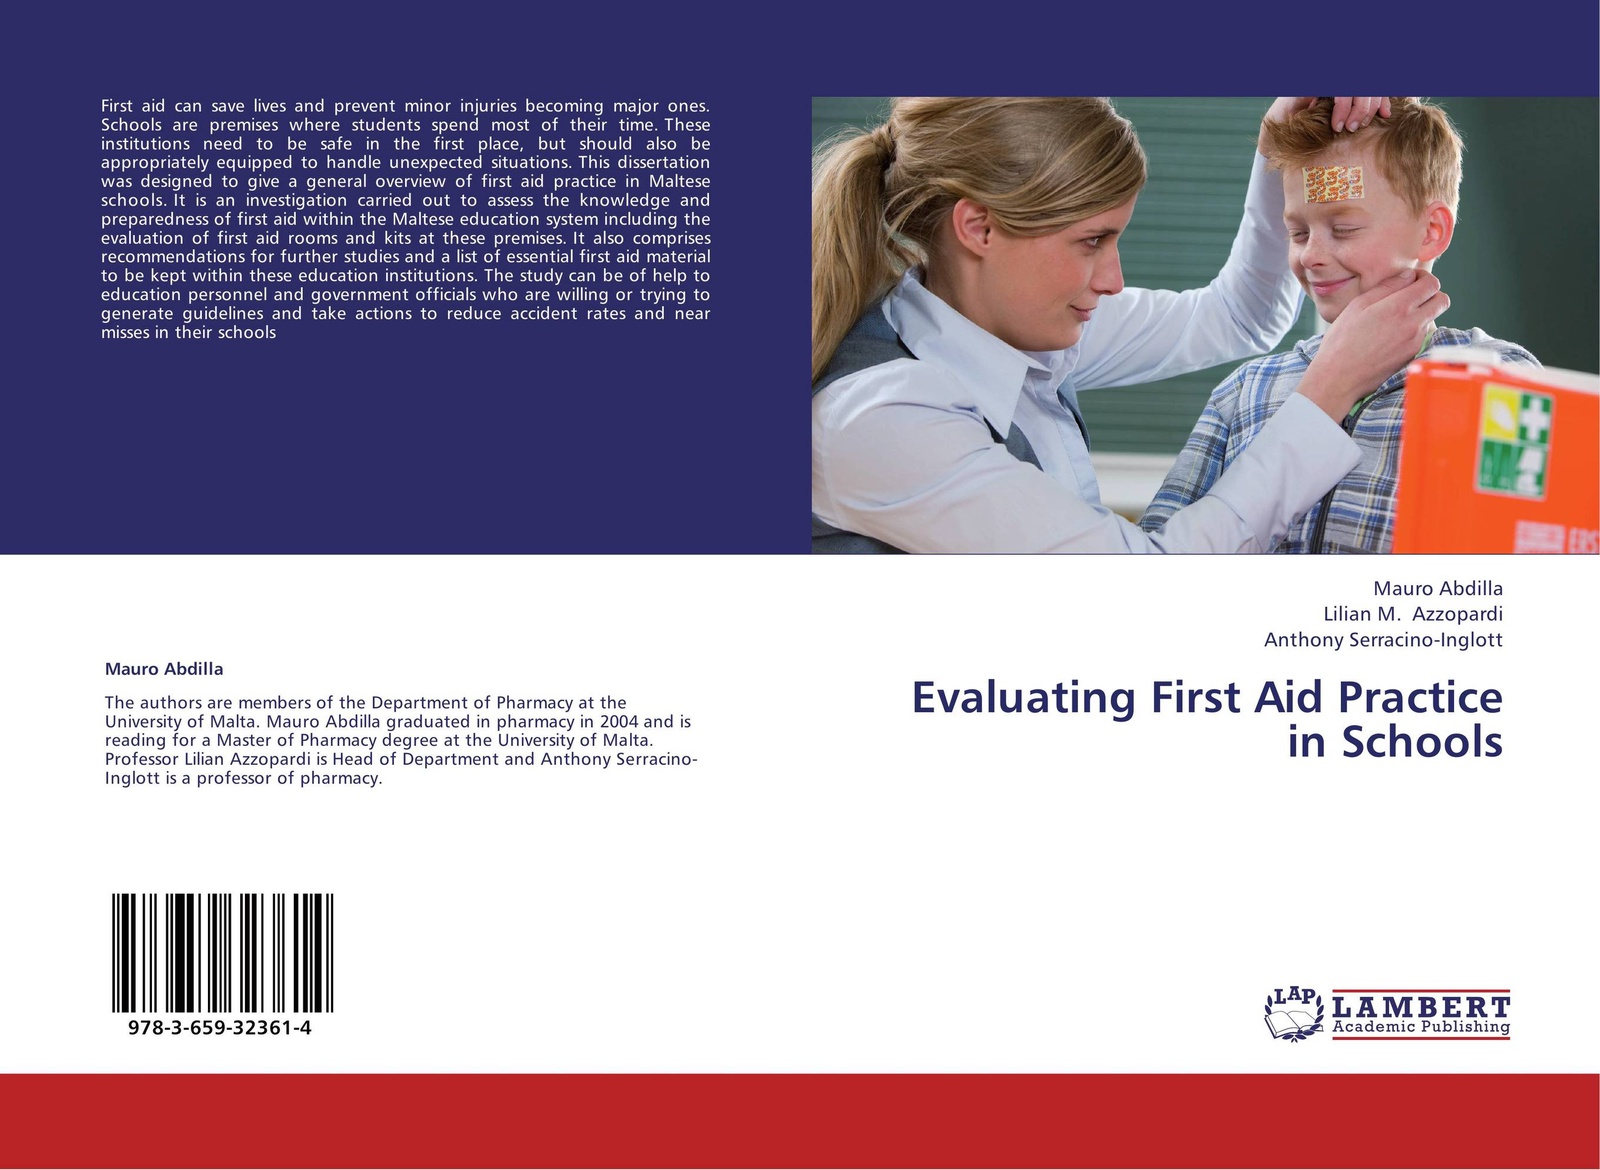 Фото - Mauro Abdilla,Lilian M. Azzopardi and Anthony Serracino-Inglott Evaluating First Aid Practice in Schools левчук и костюченко м назаров а first aid in case of accidents and emergency situations course book